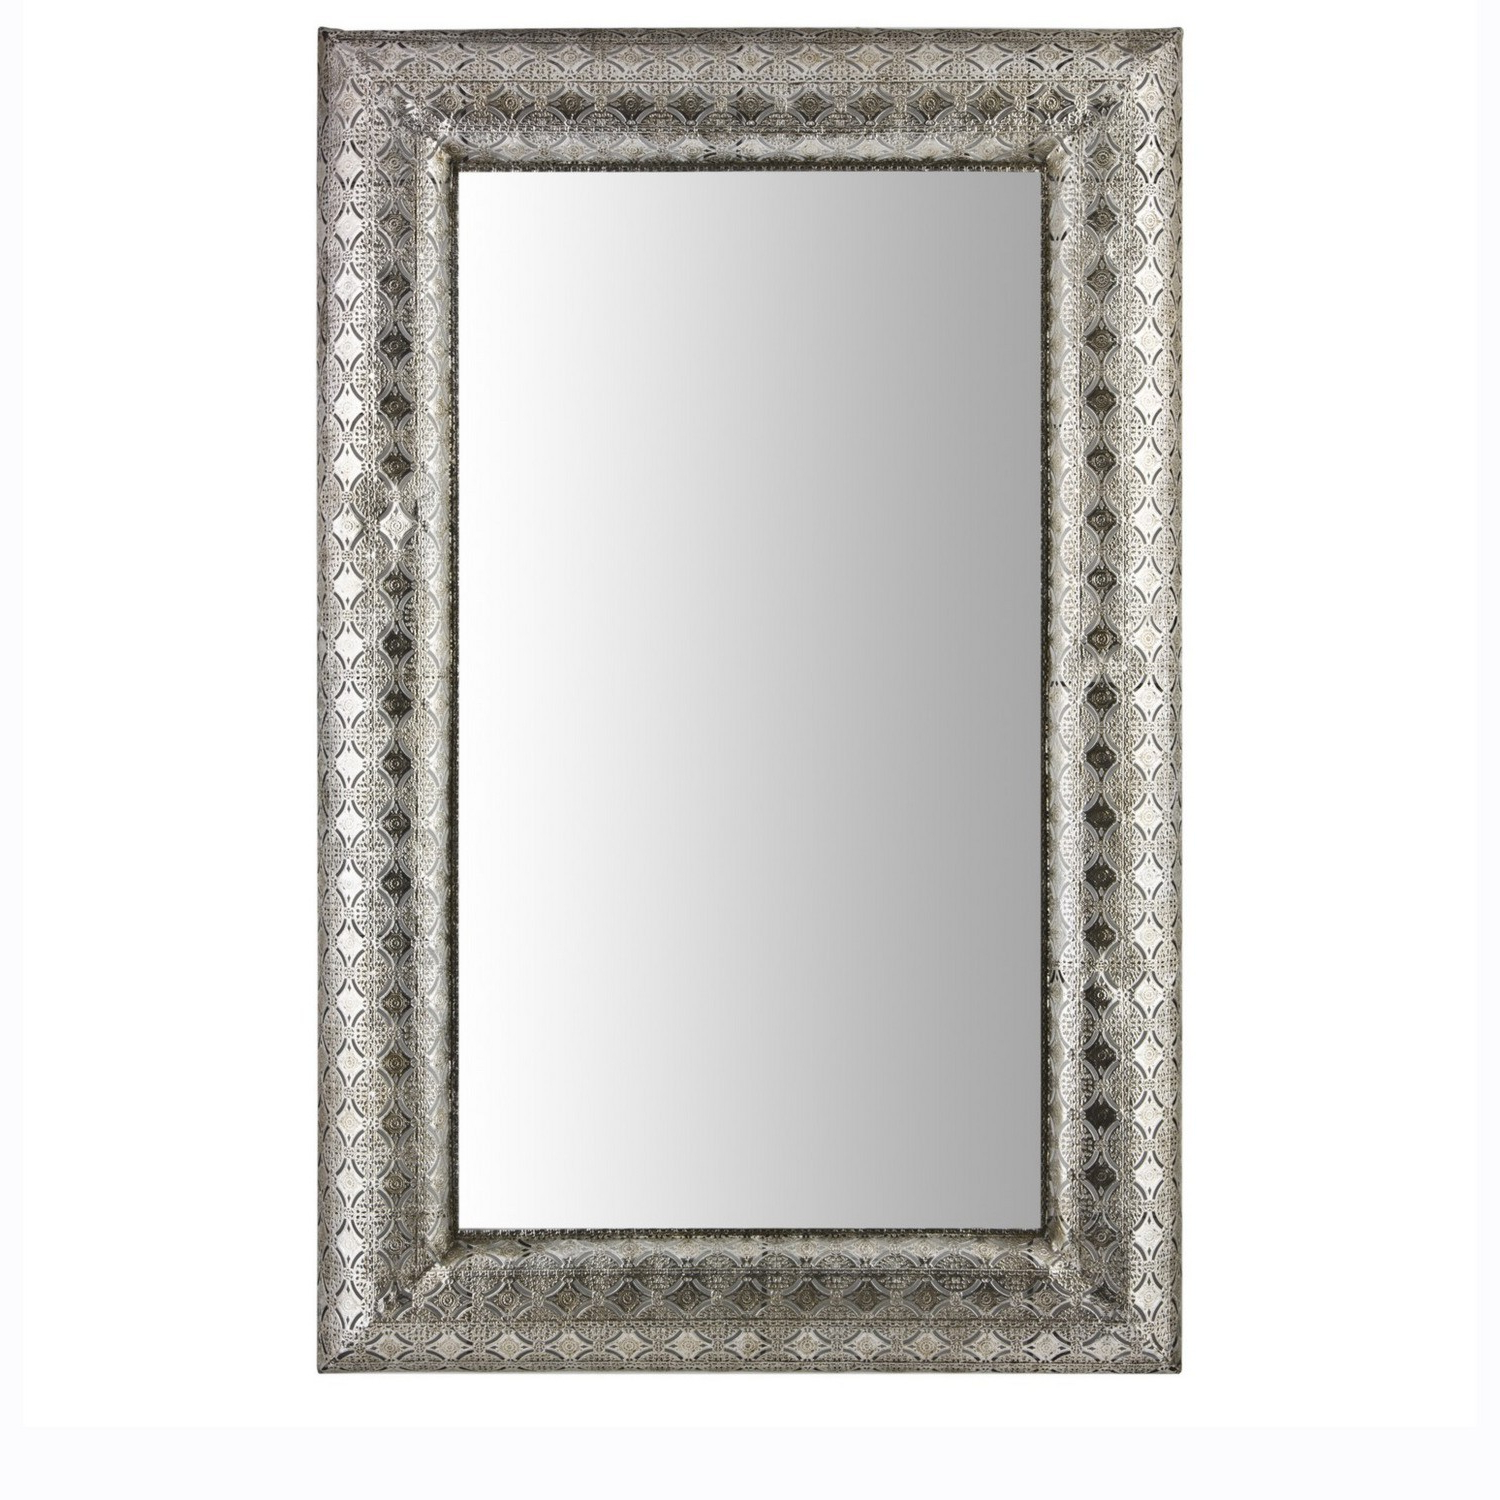 Large Silver Wall Mirrors Throughout Fashionable Mirrors (View 10 of 20)